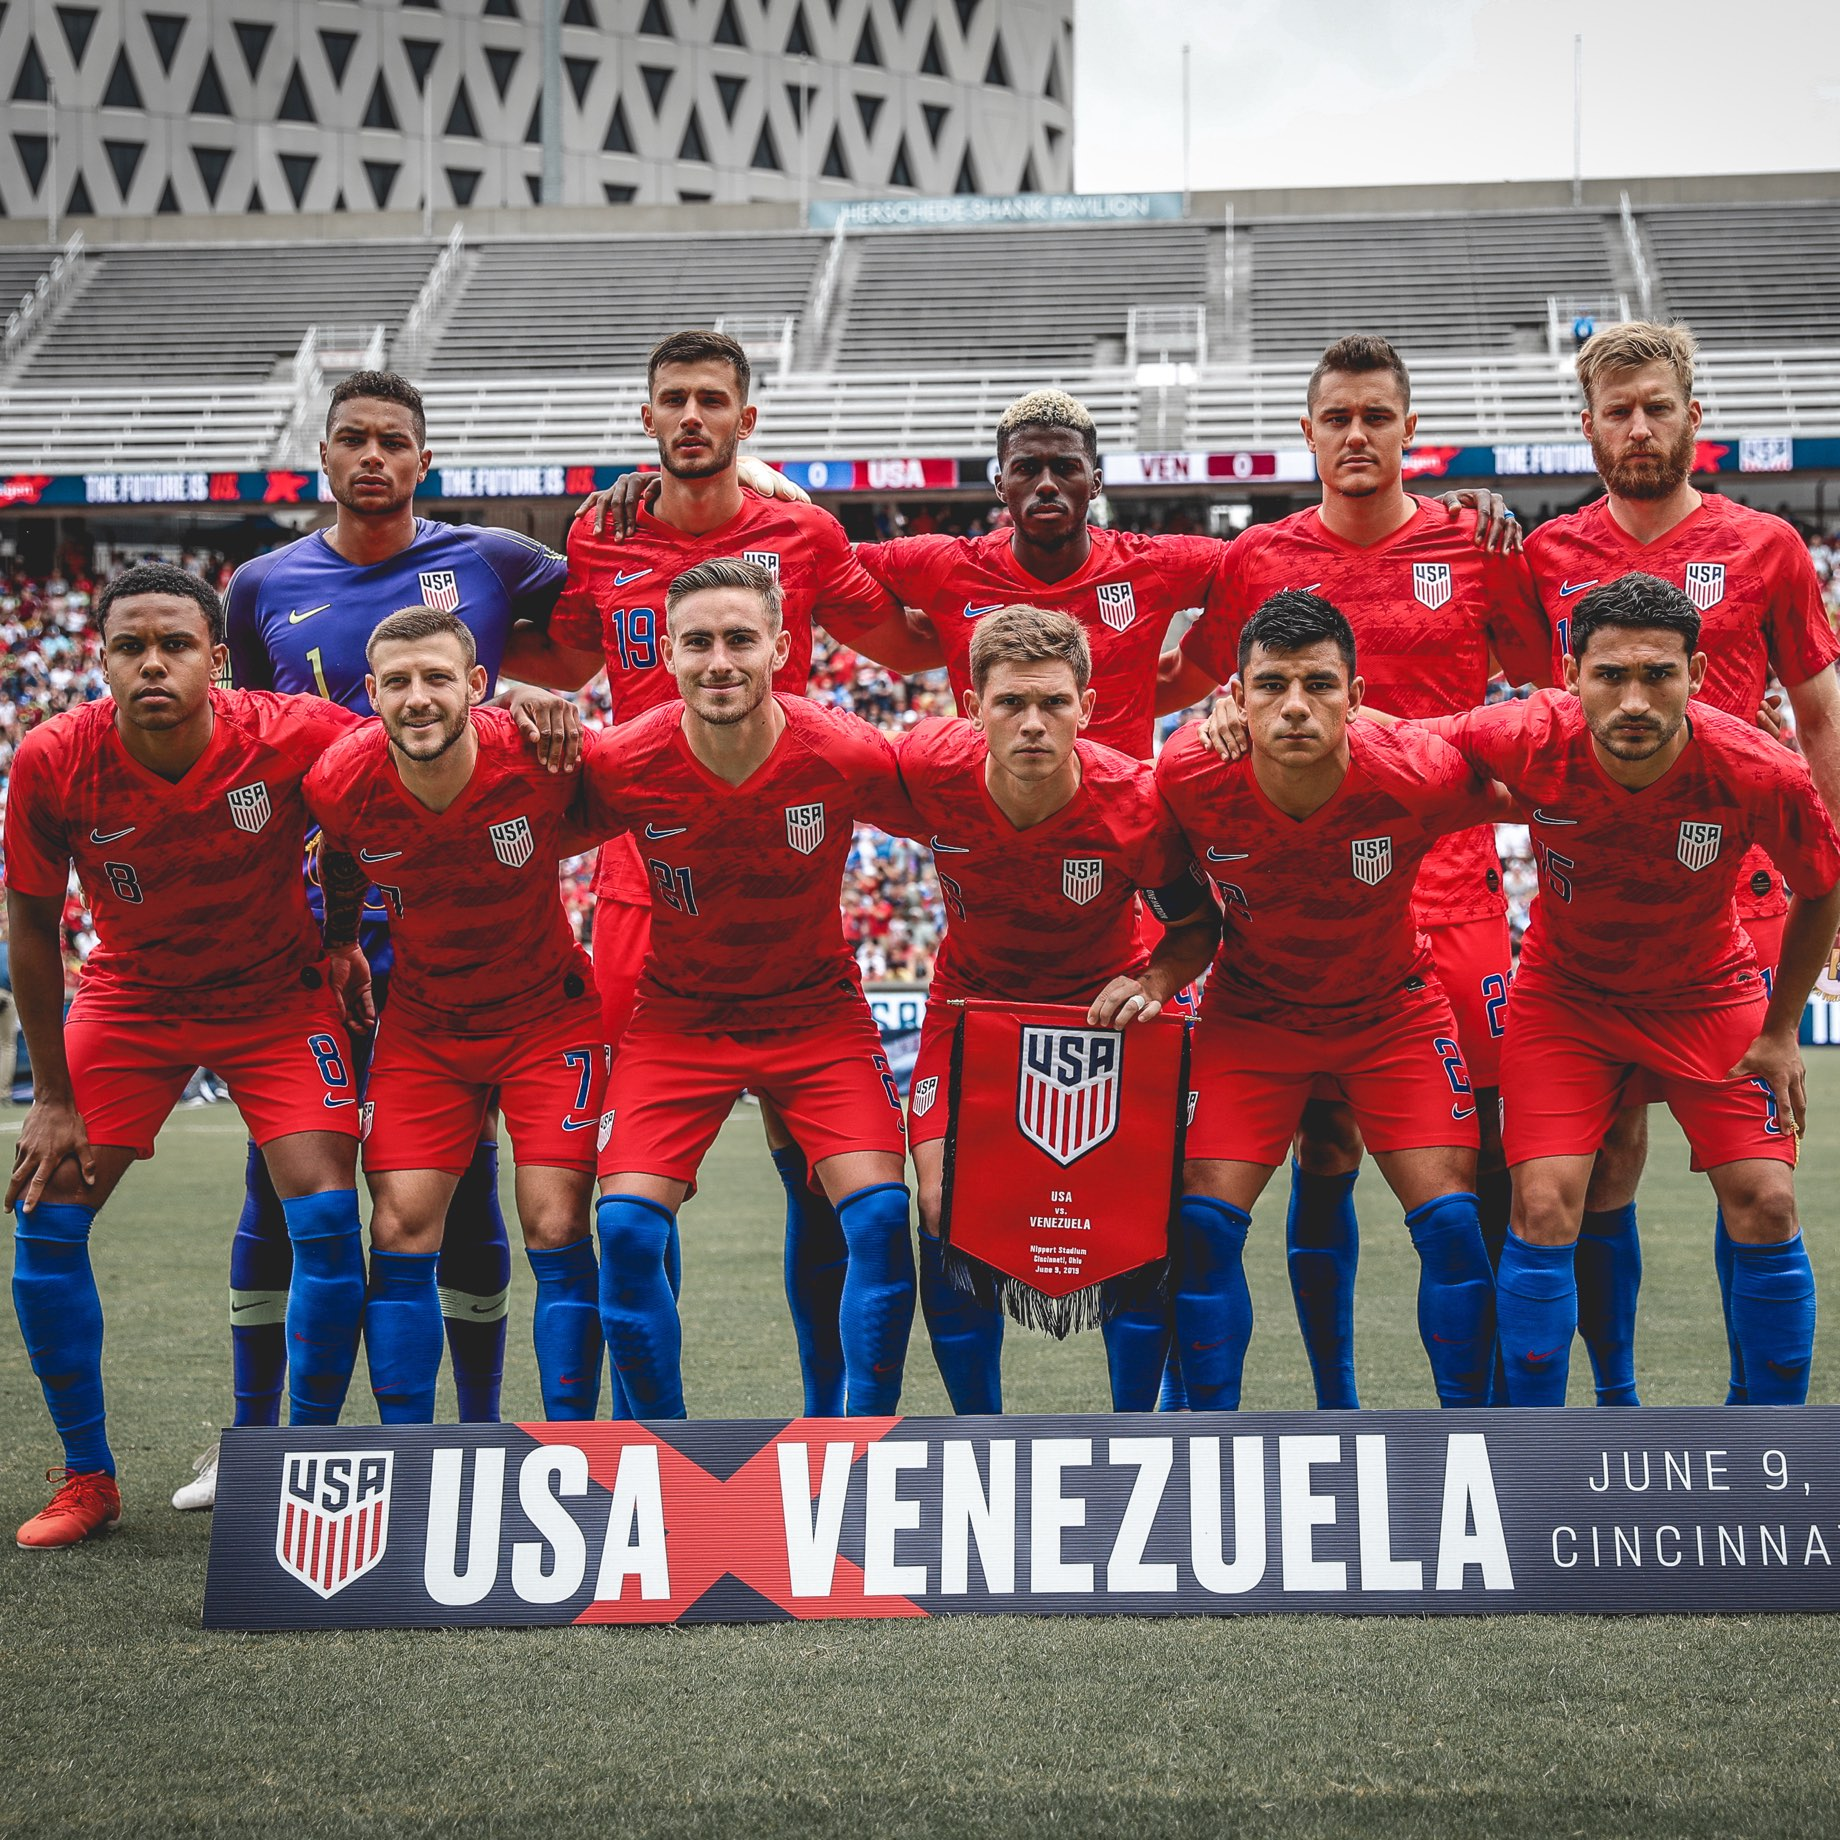 USA vs Venezuela - 6/9/2019 | International Friendly | U S